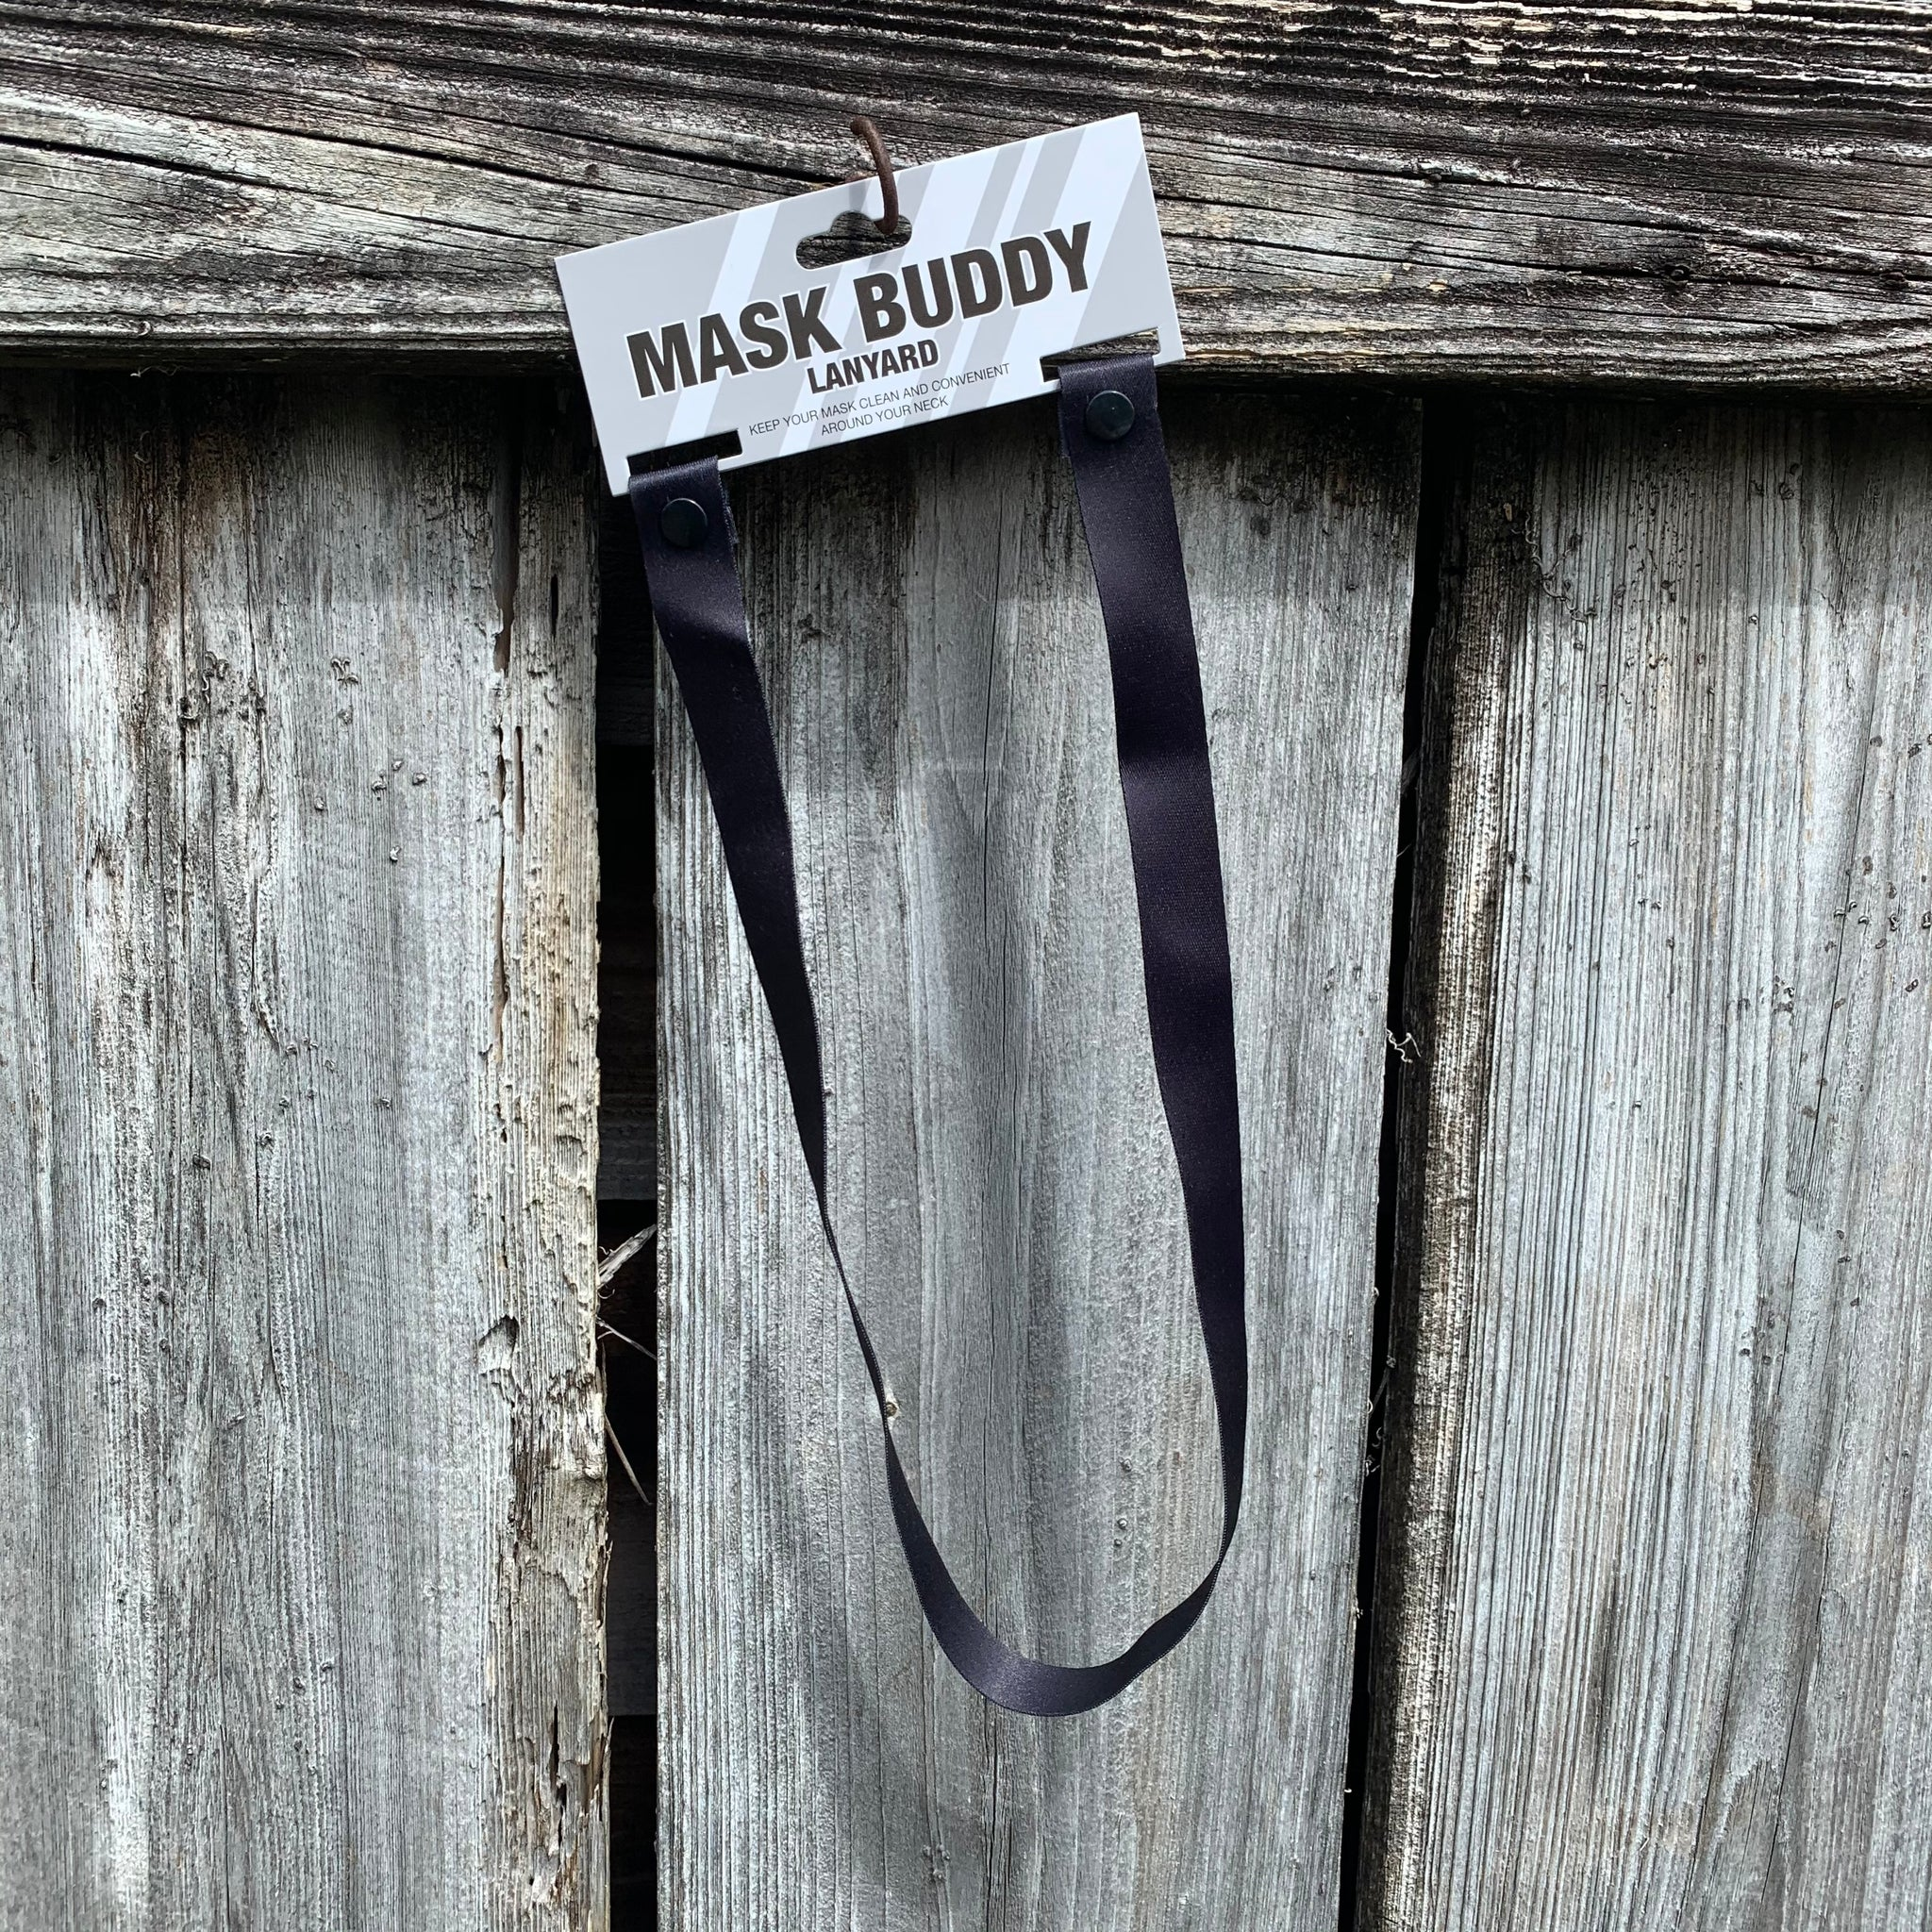 Mask Buddy Lanyard